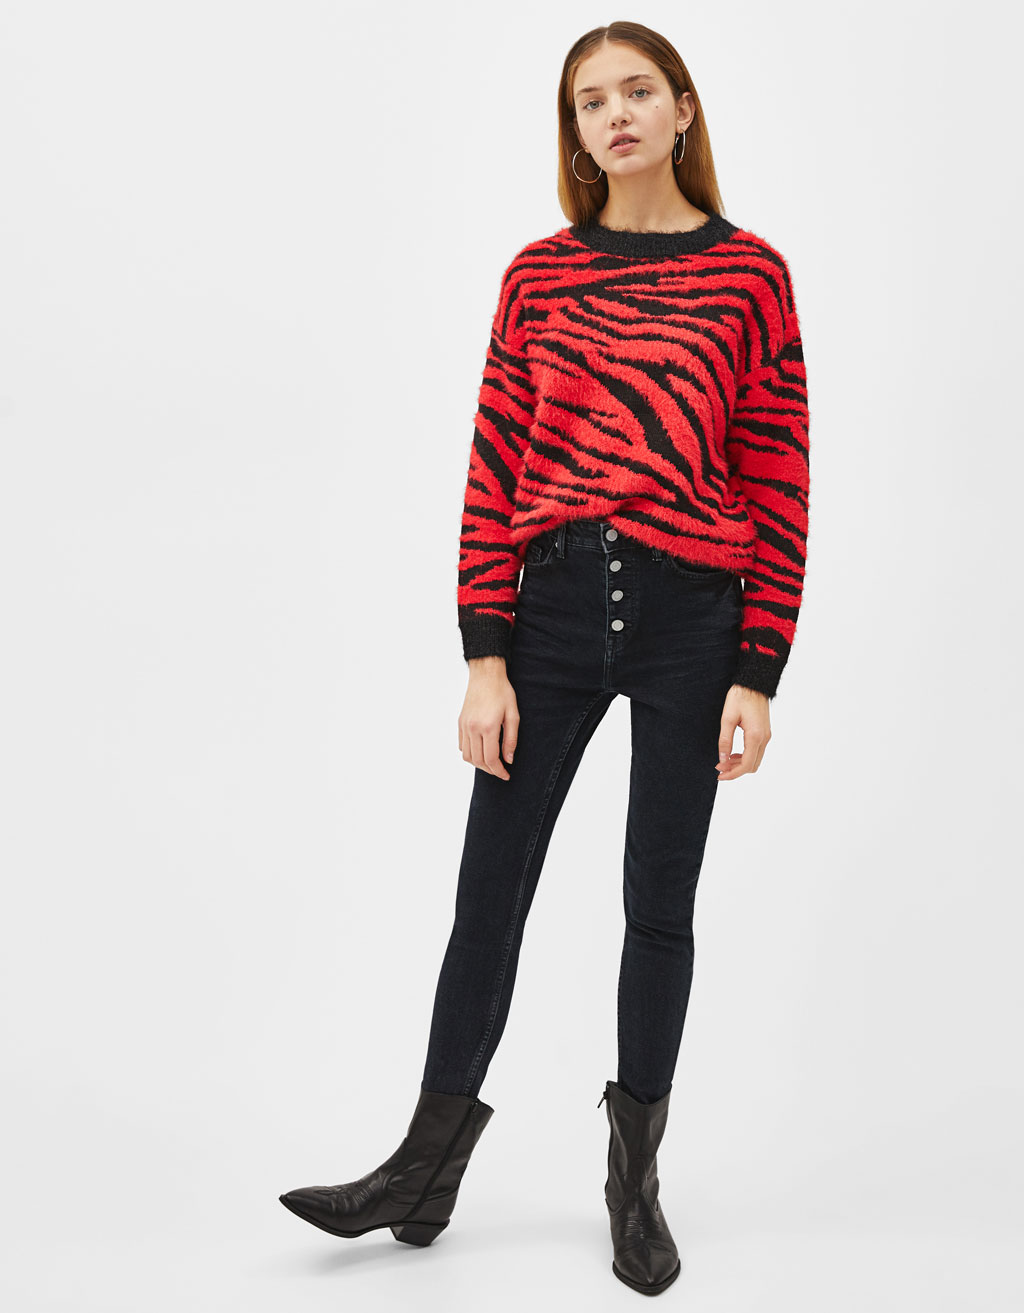 Sweater com estampado de zebra